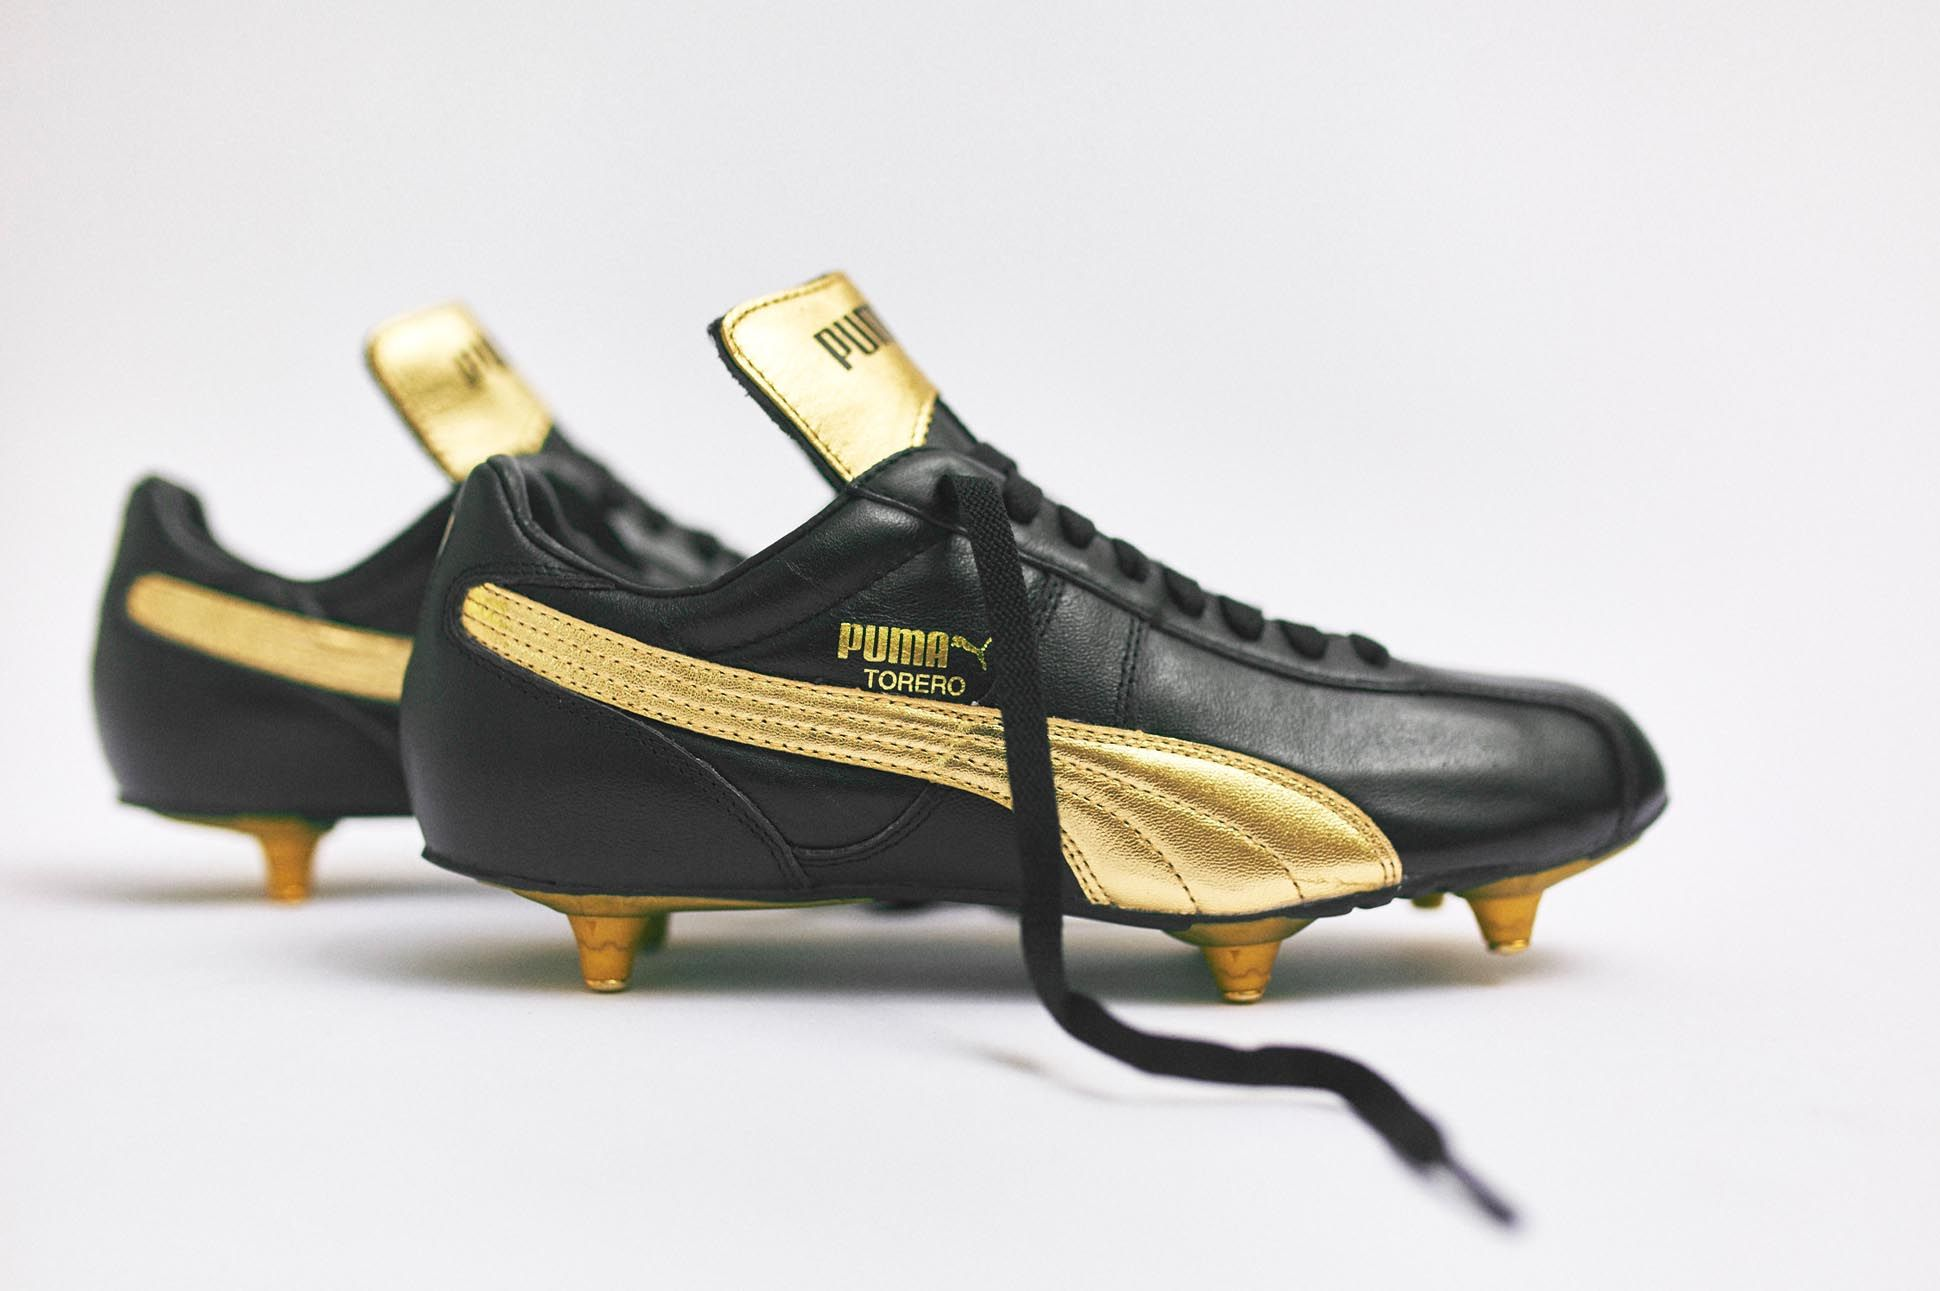 fce859fca042 PUMA King Torero Special Edition | soccer everything | Puma football ...